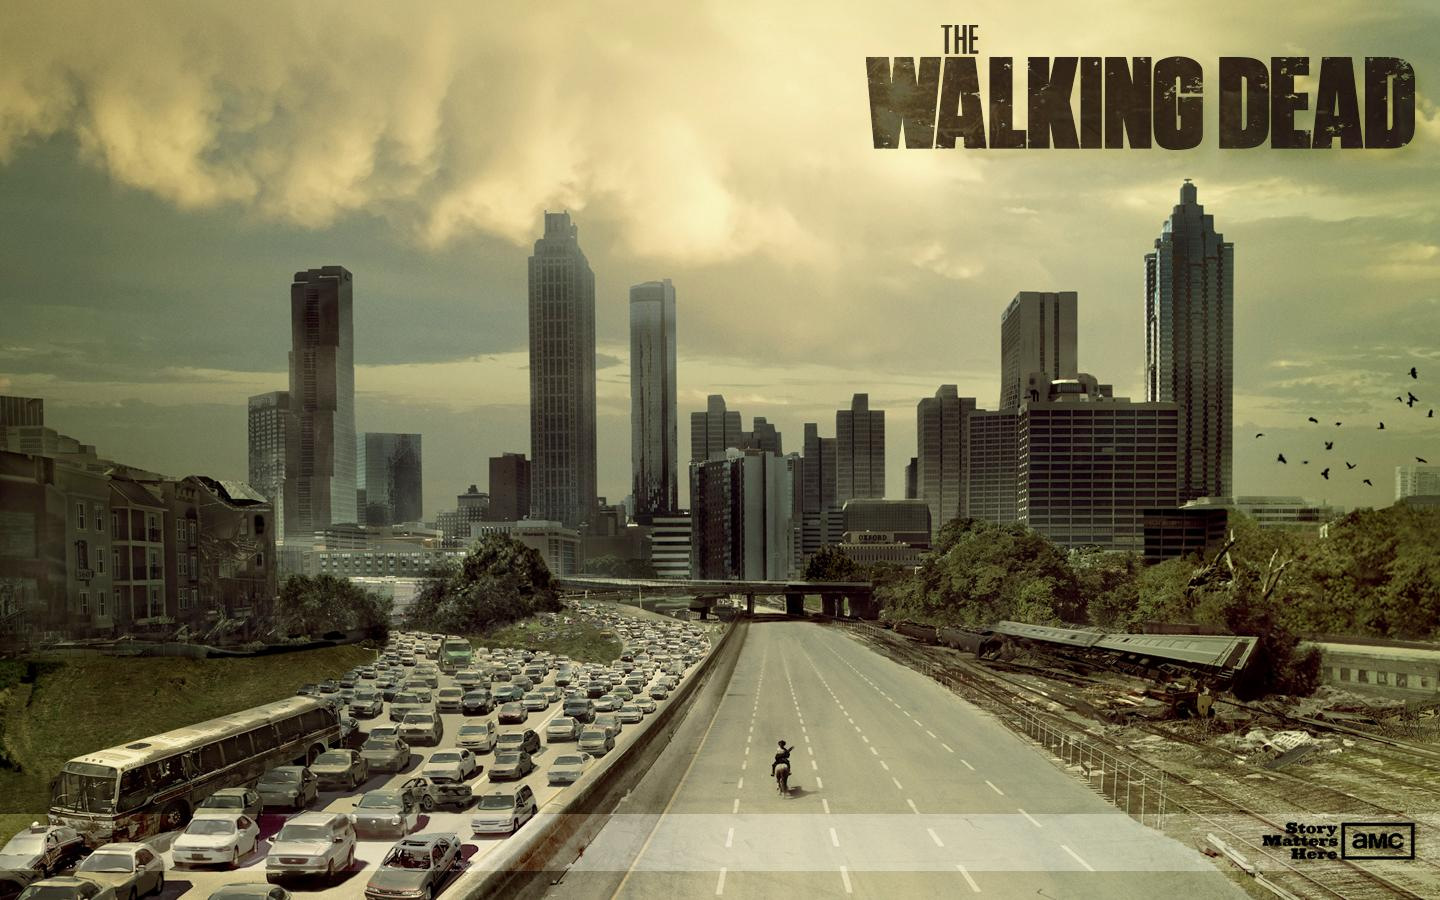 Walking Dead Season 4 6р анги